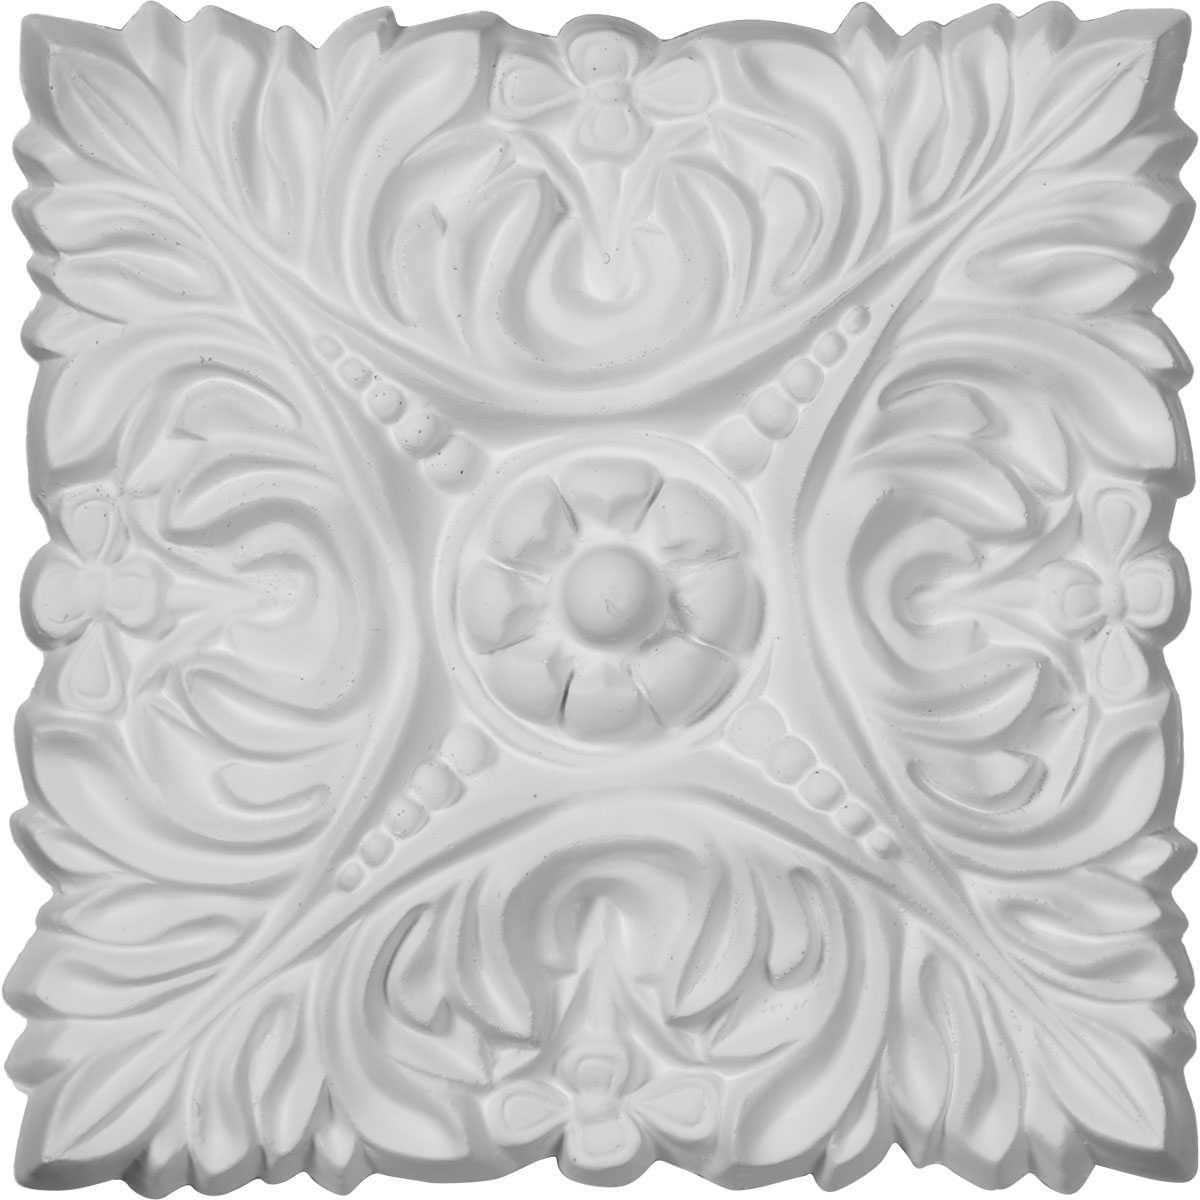 Ekena Millwork Acanthus 6 1/8''H x 6 1/8''W x 3/4''D Leaf with Beads Rosette